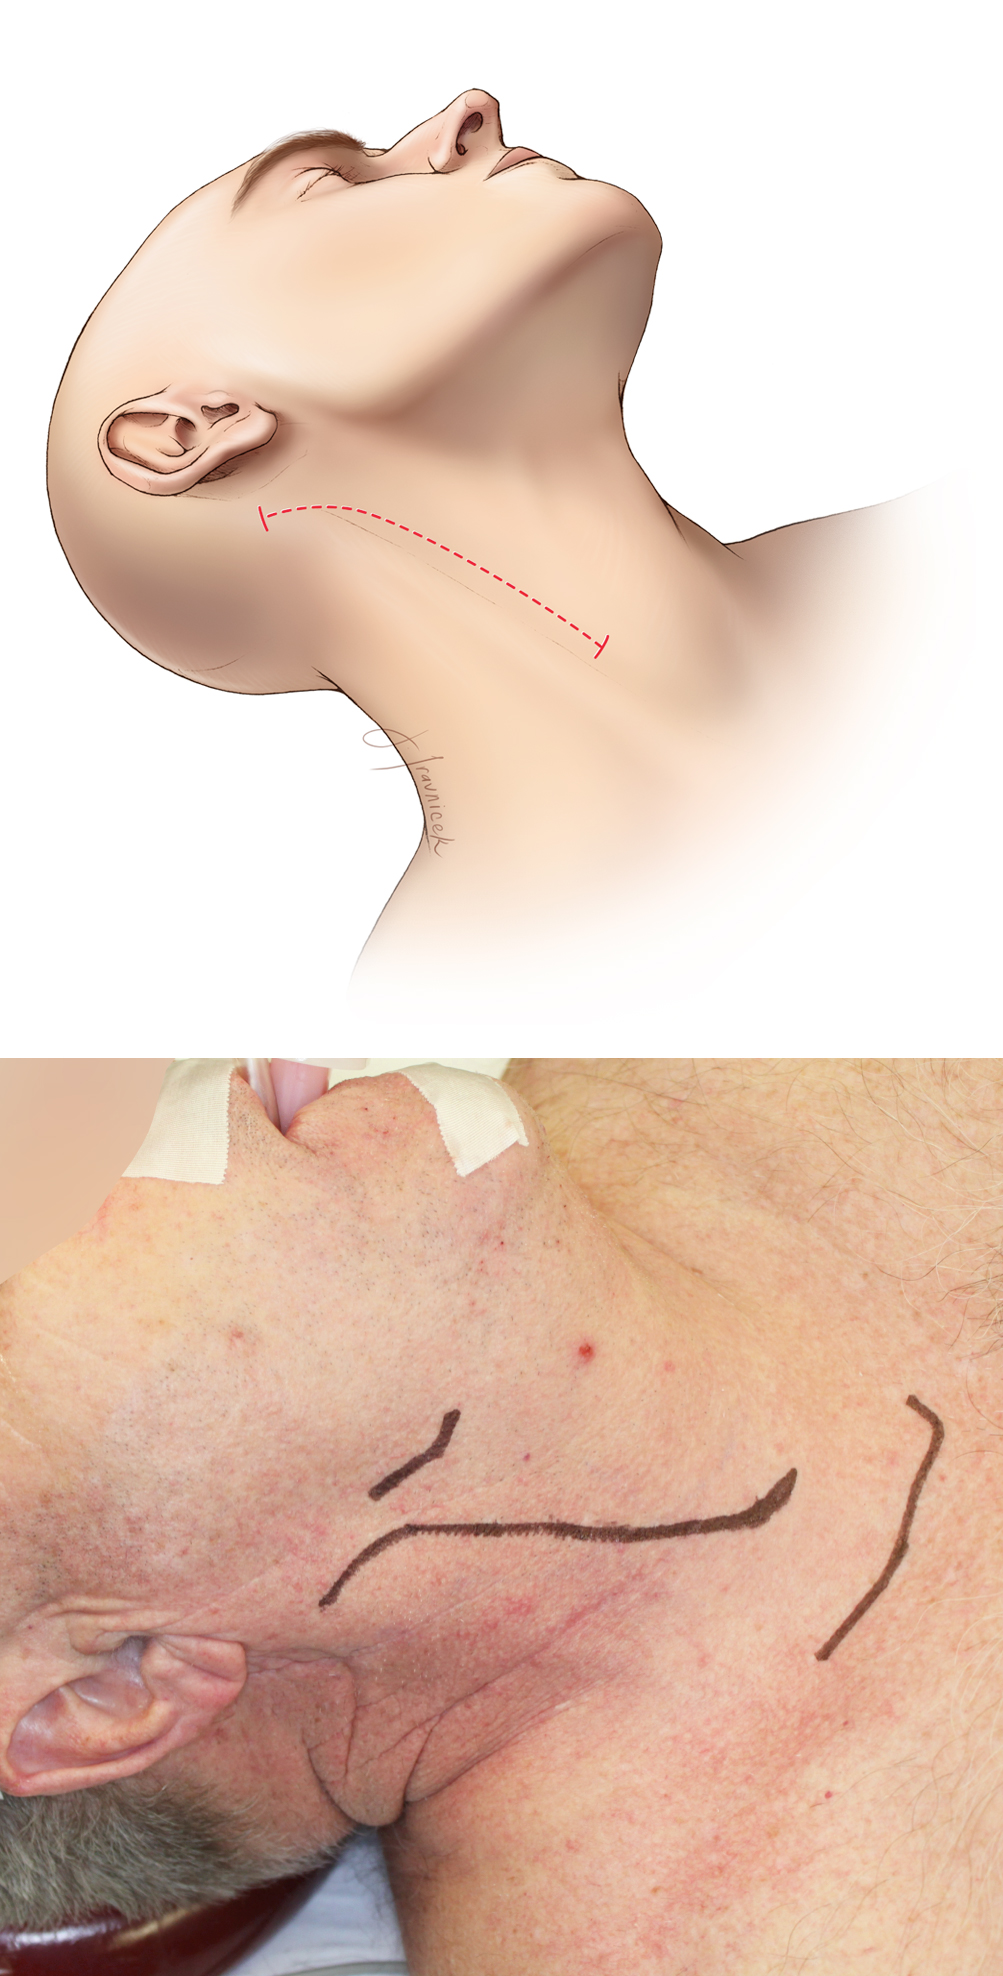 Figure 5: A vertical incision is made extending from just above the angle of the mandible to just below the thyroid cartilage, along the anterior border of the sternocleidomastoid muscle (top image). The incision may be enlarged as low as the suprasternal notch and as high as the retroauricular region, depending on the level of the bifurcation. The incision should not closely approach the angle of the mandible to decrease the risk of marginal mandibular branch injury. The angle of the mandible and the sternal notch are marked (bottom photo). Note the slight rotation of the patient's neck.